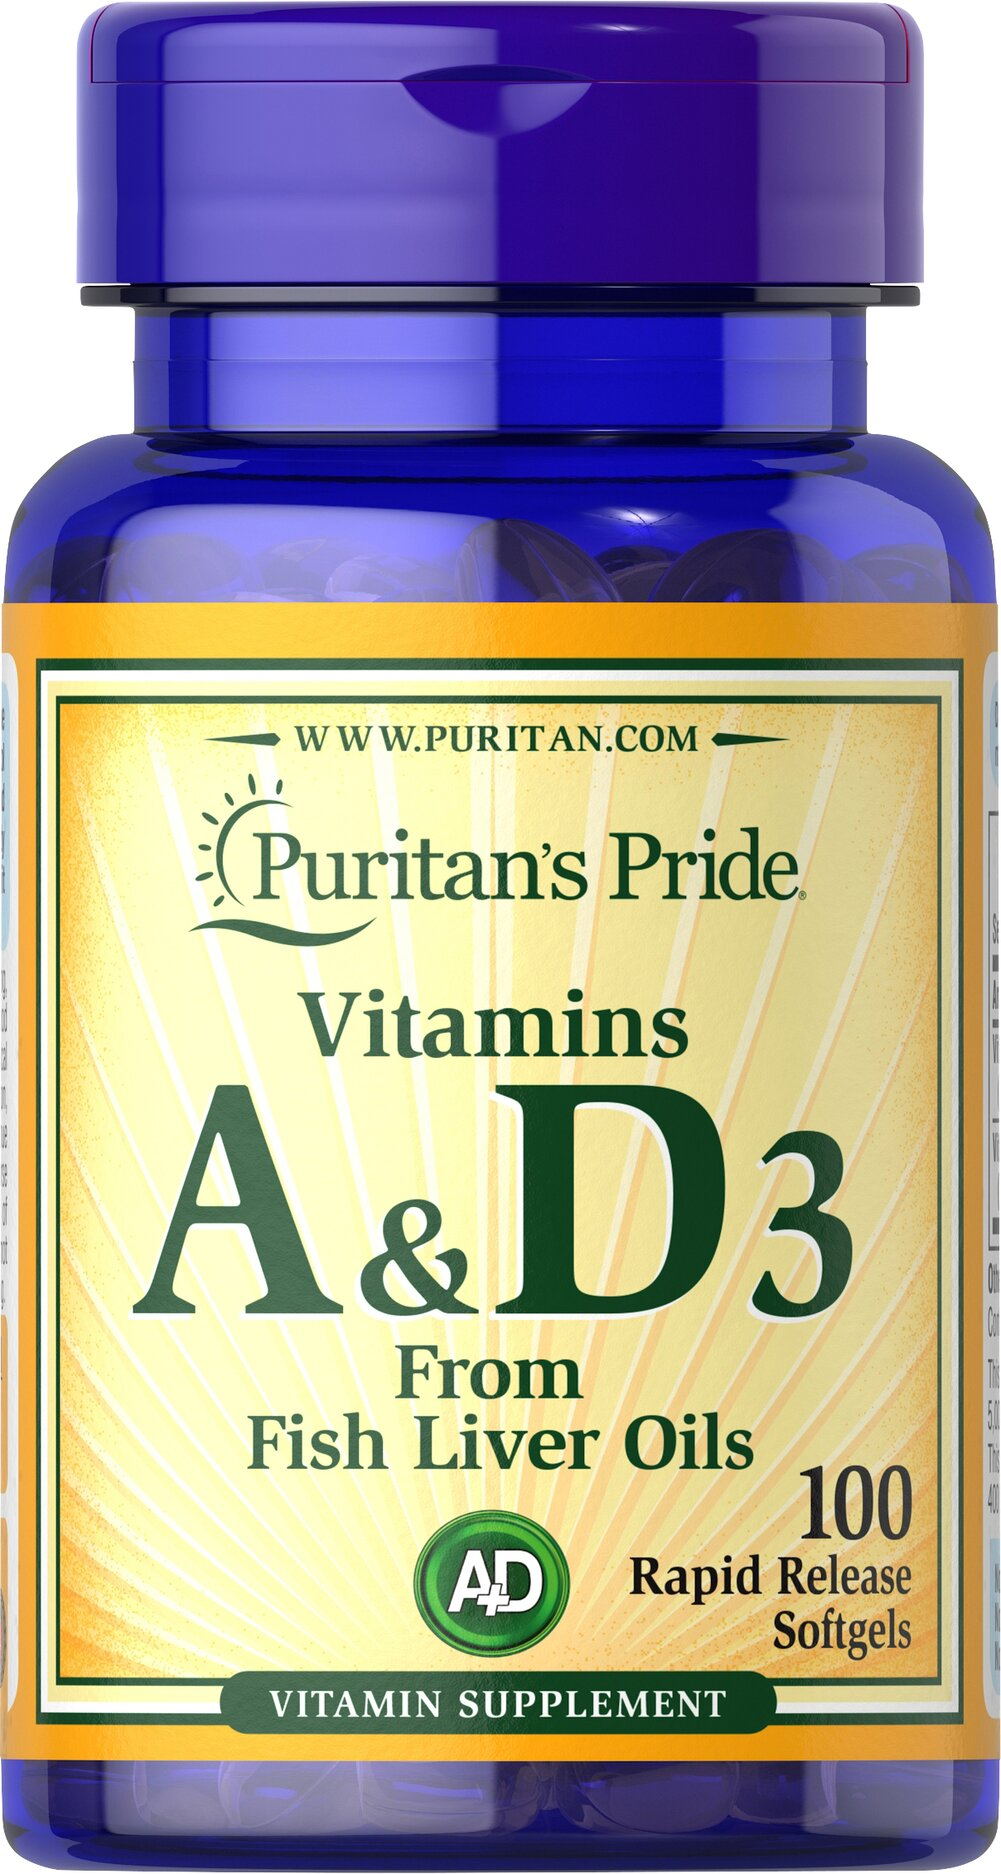 Vitamins A & D 5000/400 IU <p>Vitamin A & D are essential nutrients. Vitamin A helps regulate the immune system and assists in many other functions such as eyesight. ** Vitamin D helps maintain healthy bones in adults and is essential to Calcium absorption. **</p><p>Helps maintain the health of eyes. **</p><p>Supports the immune system.** </p><p>Helps maintain the skin and health of hair. ** </p><p>Plays a role in maintaining bone